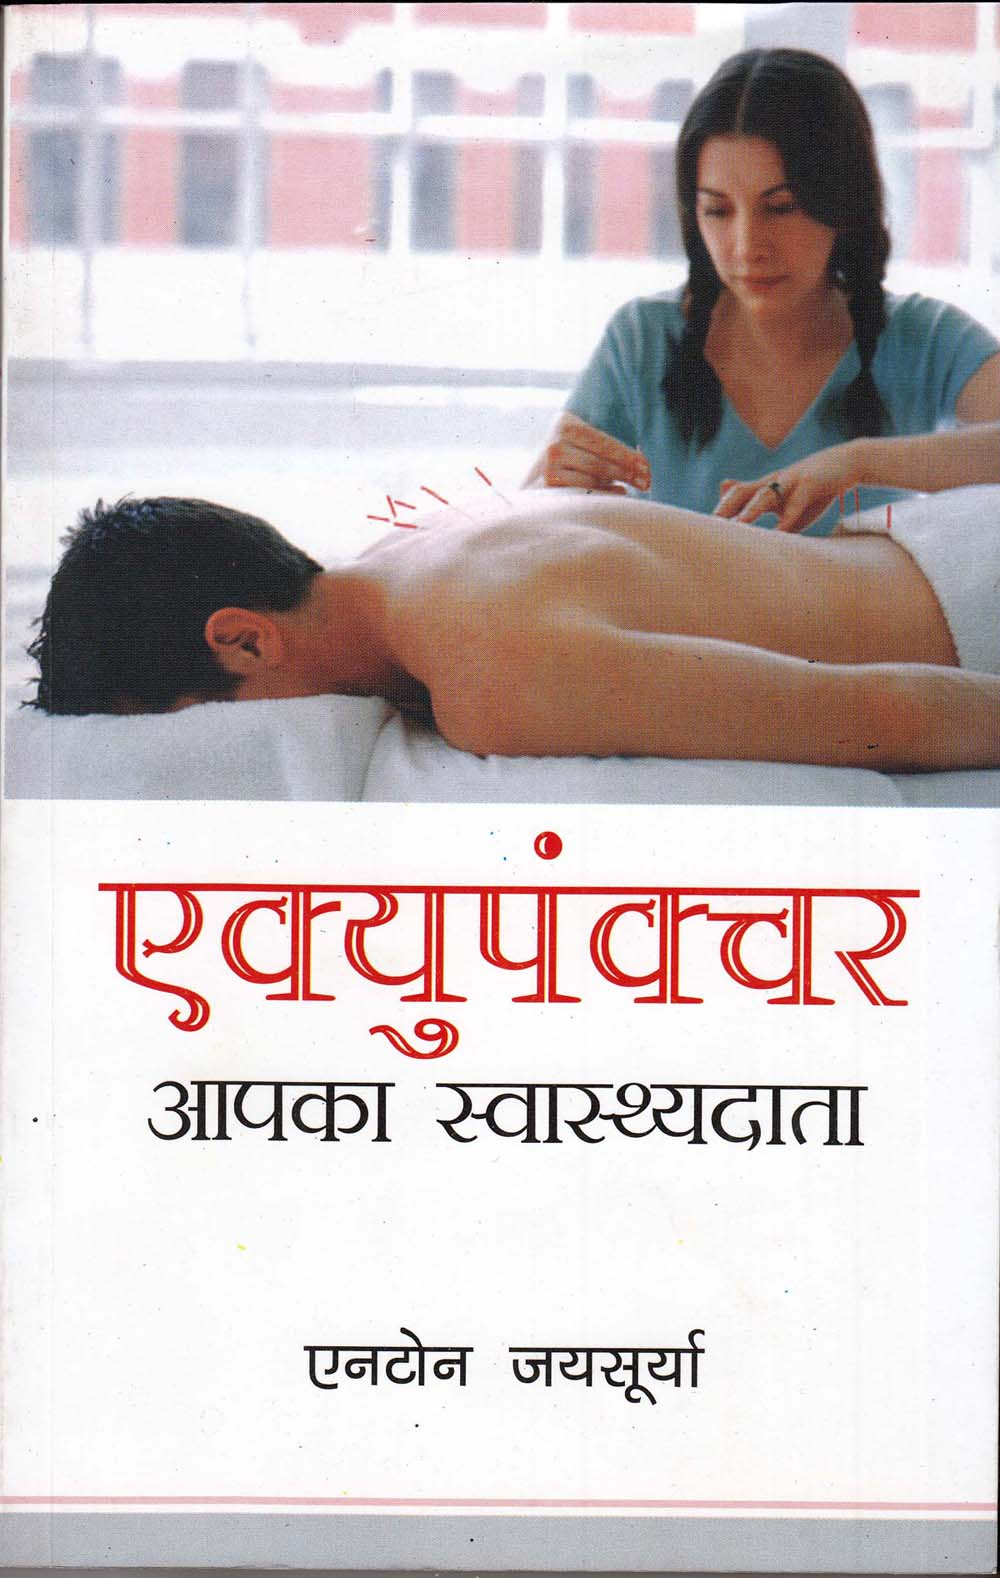 Acupuncture Apka Swasthyadata Hindi Book